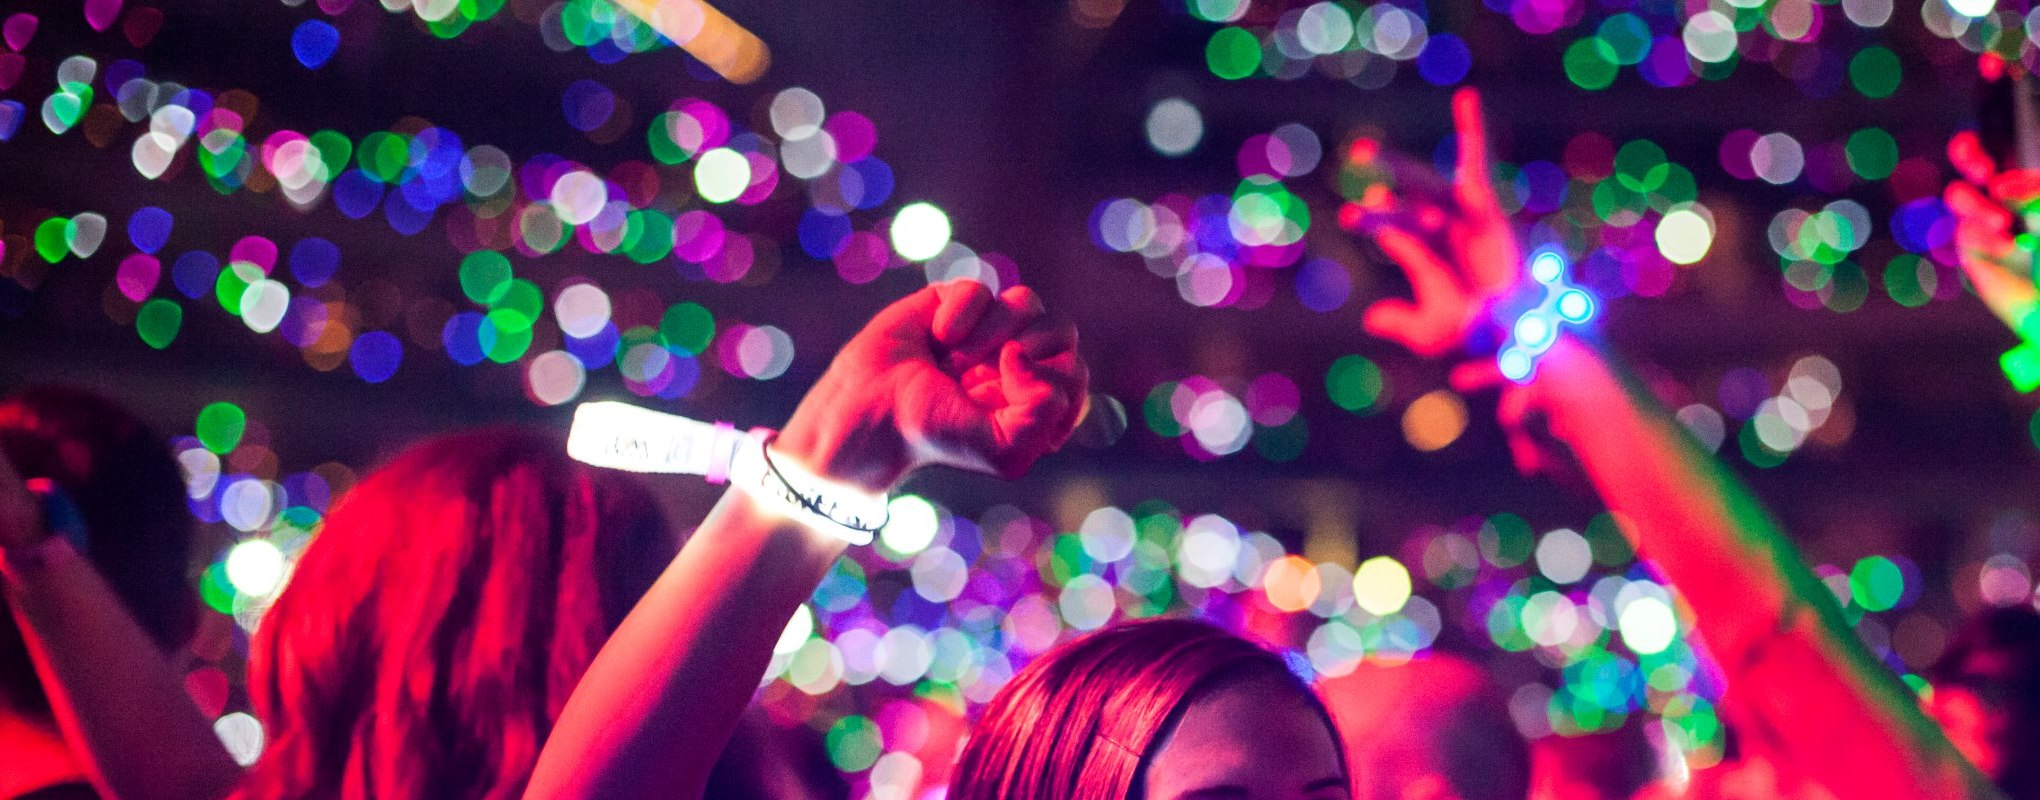 fans in the crowd of a concert with led bracelits